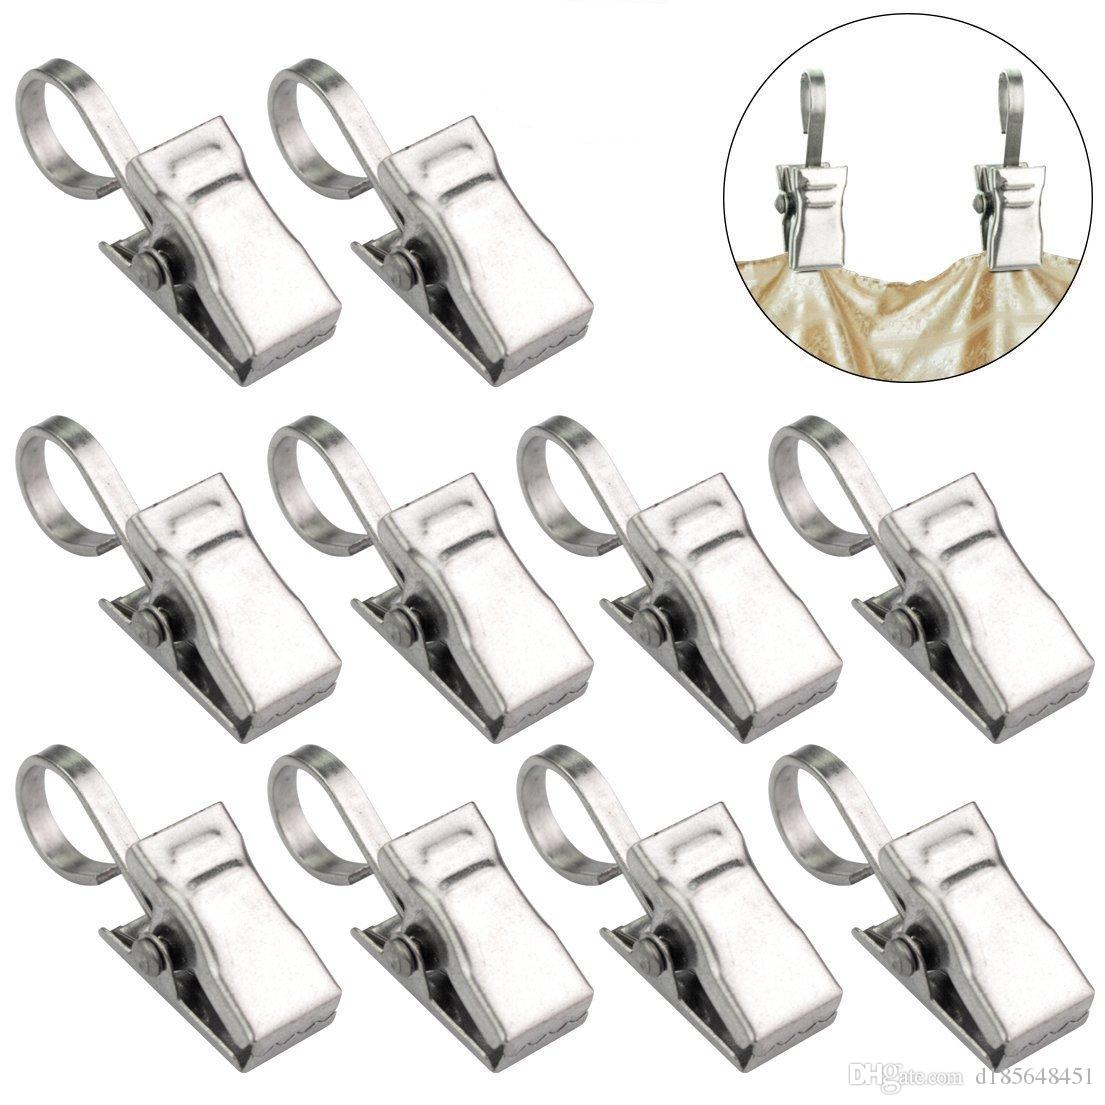 2019 Stainless Steel Thickening And Hardening Shower Curtain Clip Rings With Hooks Home Decor Strong Bearing Beautiful And Generou From D185648451